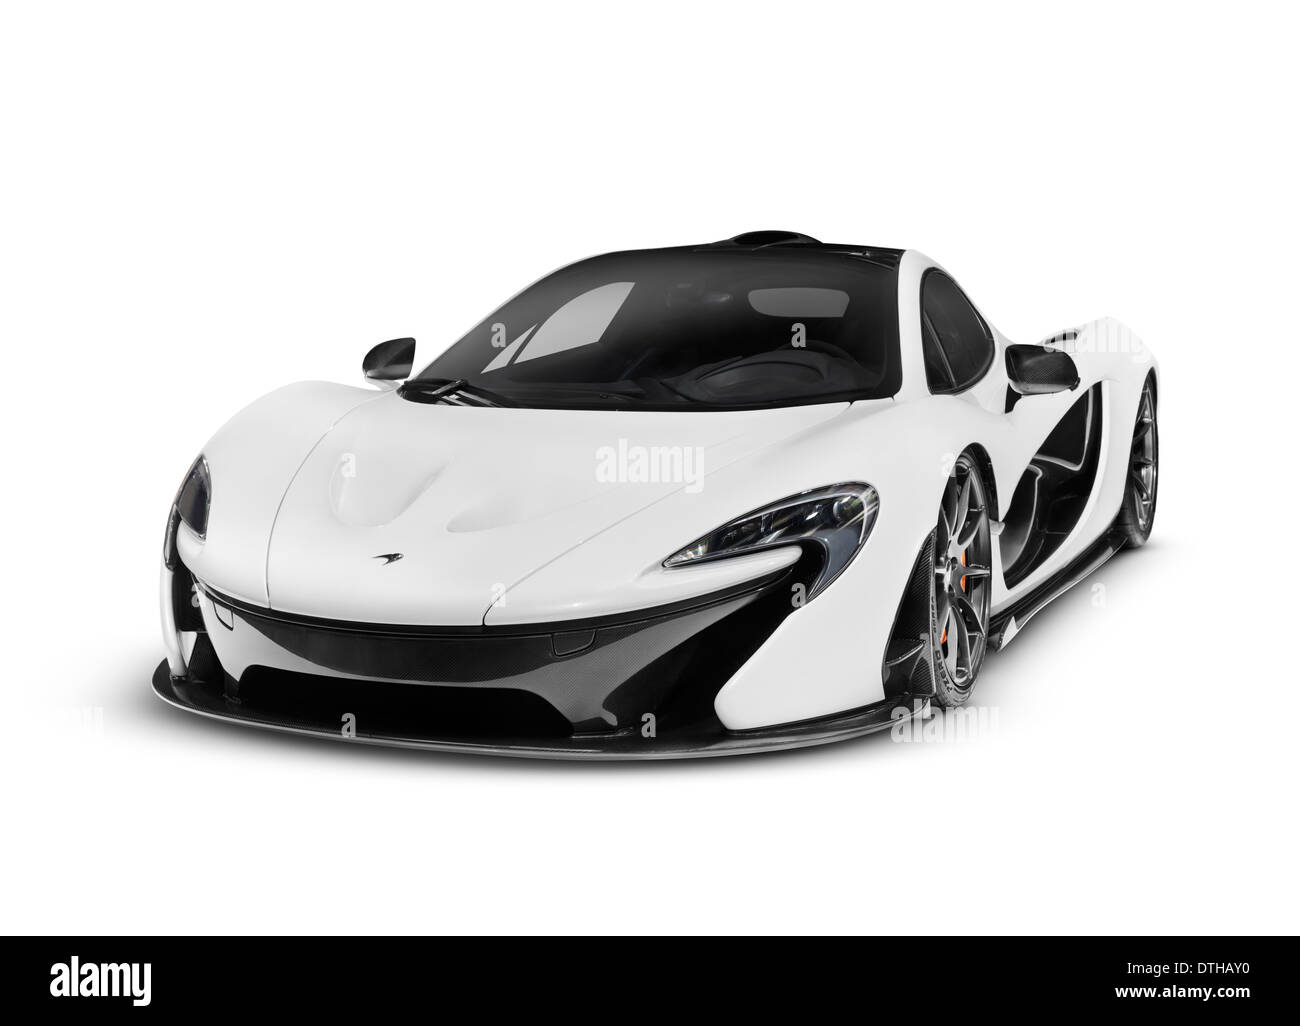 mclaren p1 black and white. stock photo white 2014 mclaren p1 plugin hybrid supercar isolated sports car on background with clipping path mclaren black and